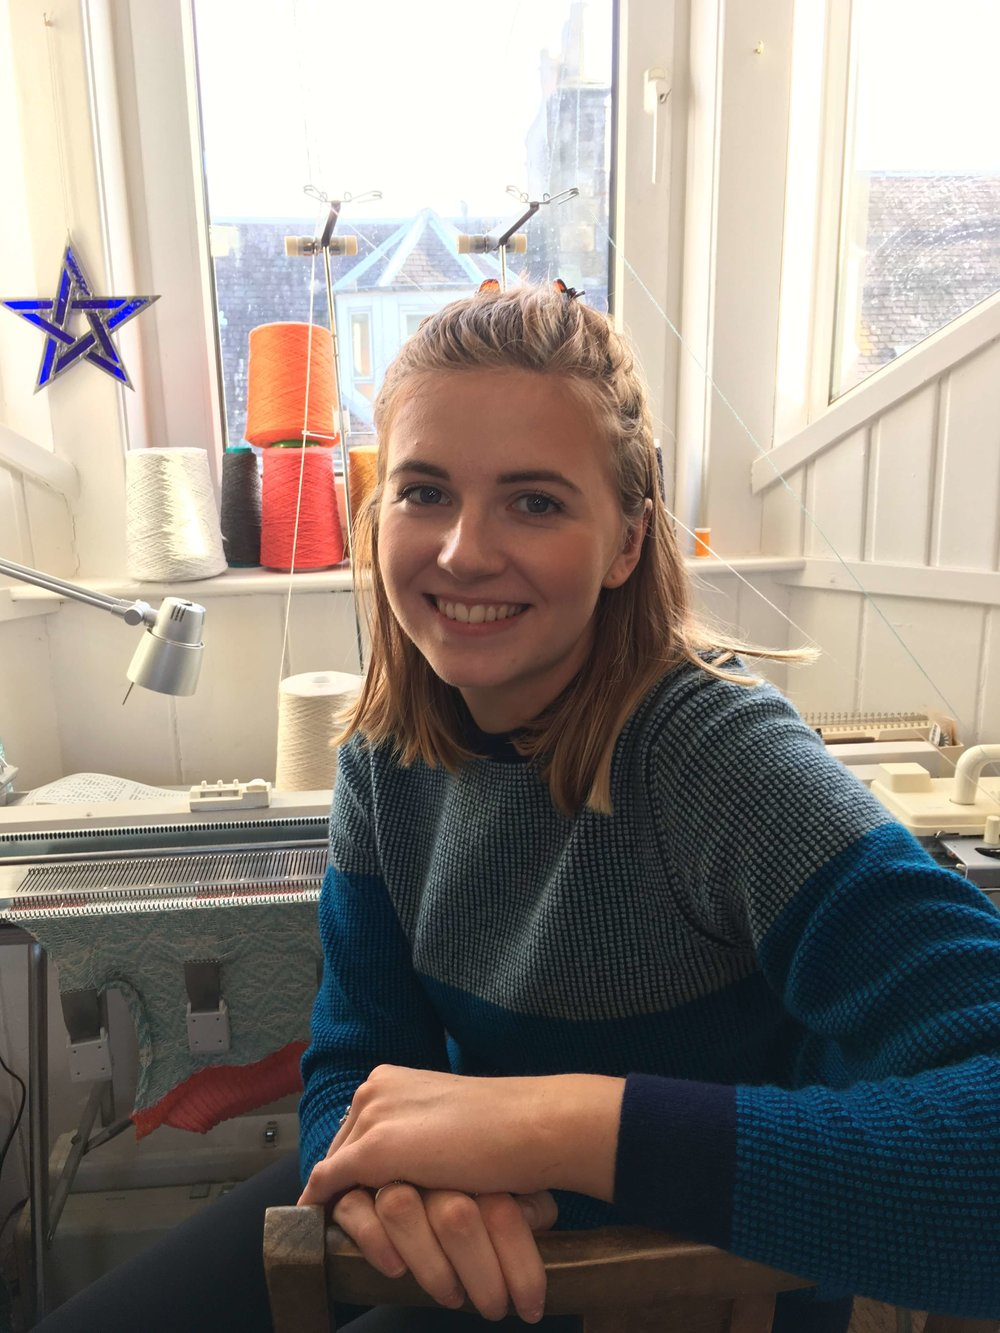 Meet Cara, the new studio assistant/ knitter here at Collingwood-Norris!